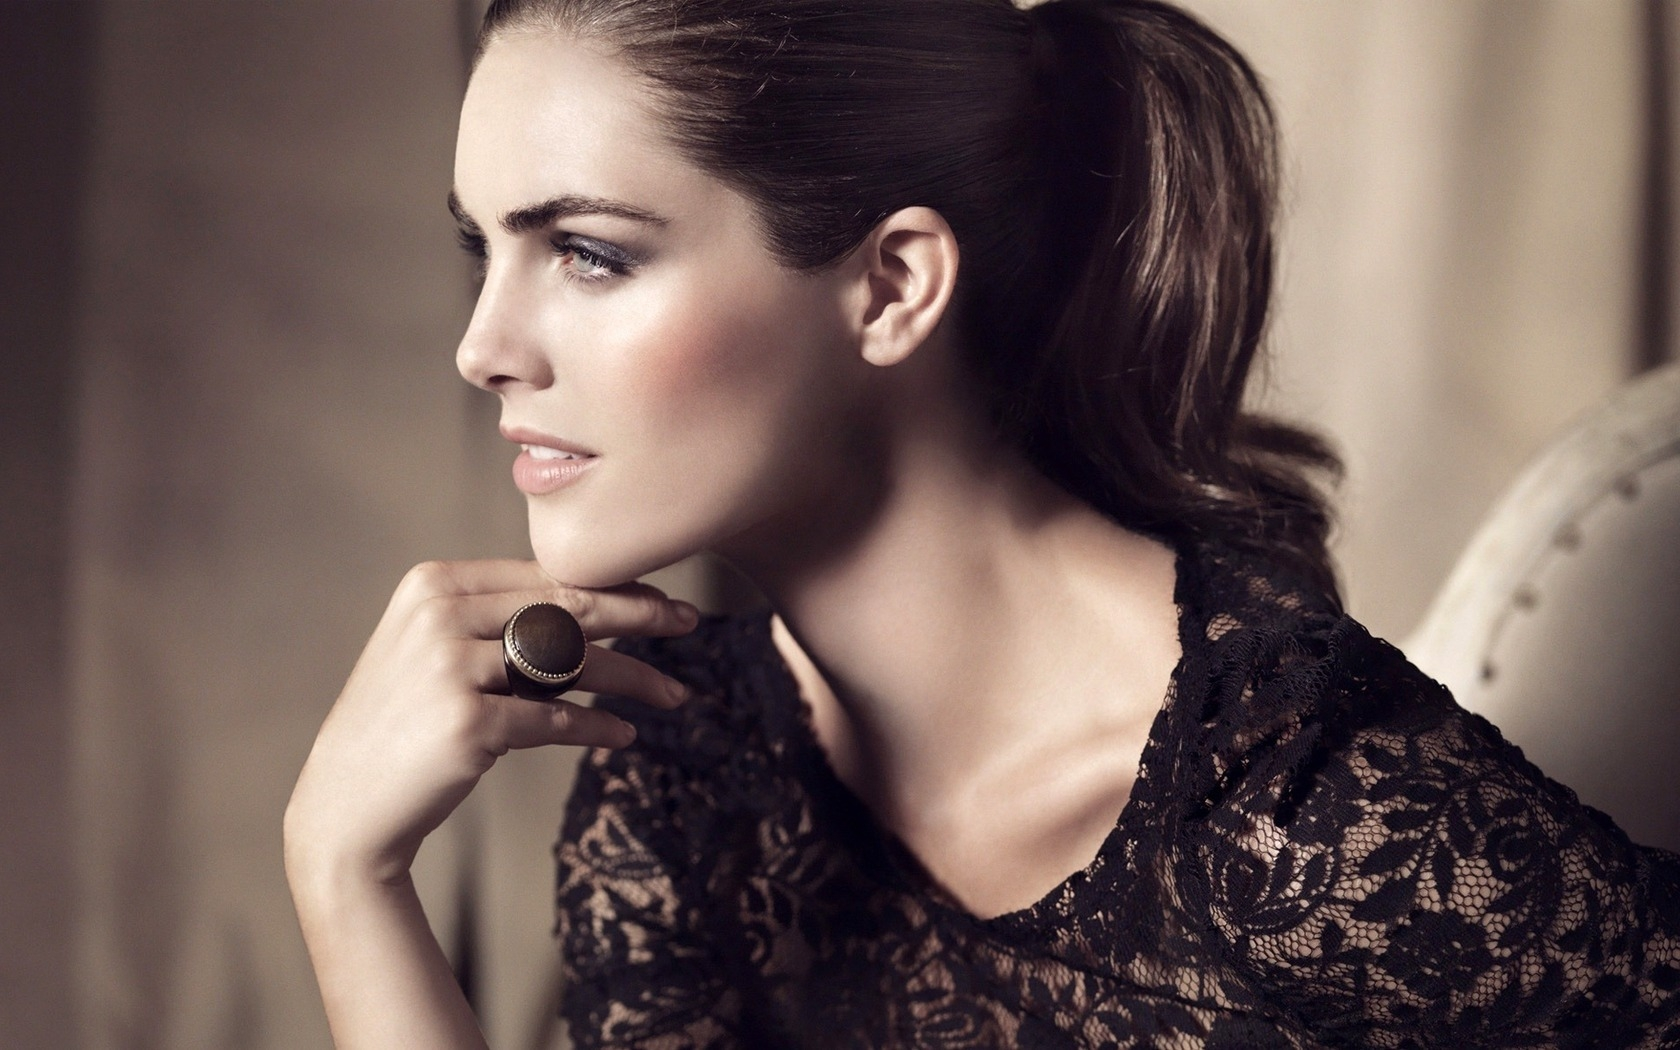 Hilary Rhoda Backgrounds, Compatible - PC, Mobile, Gadgets  1680x1050 px